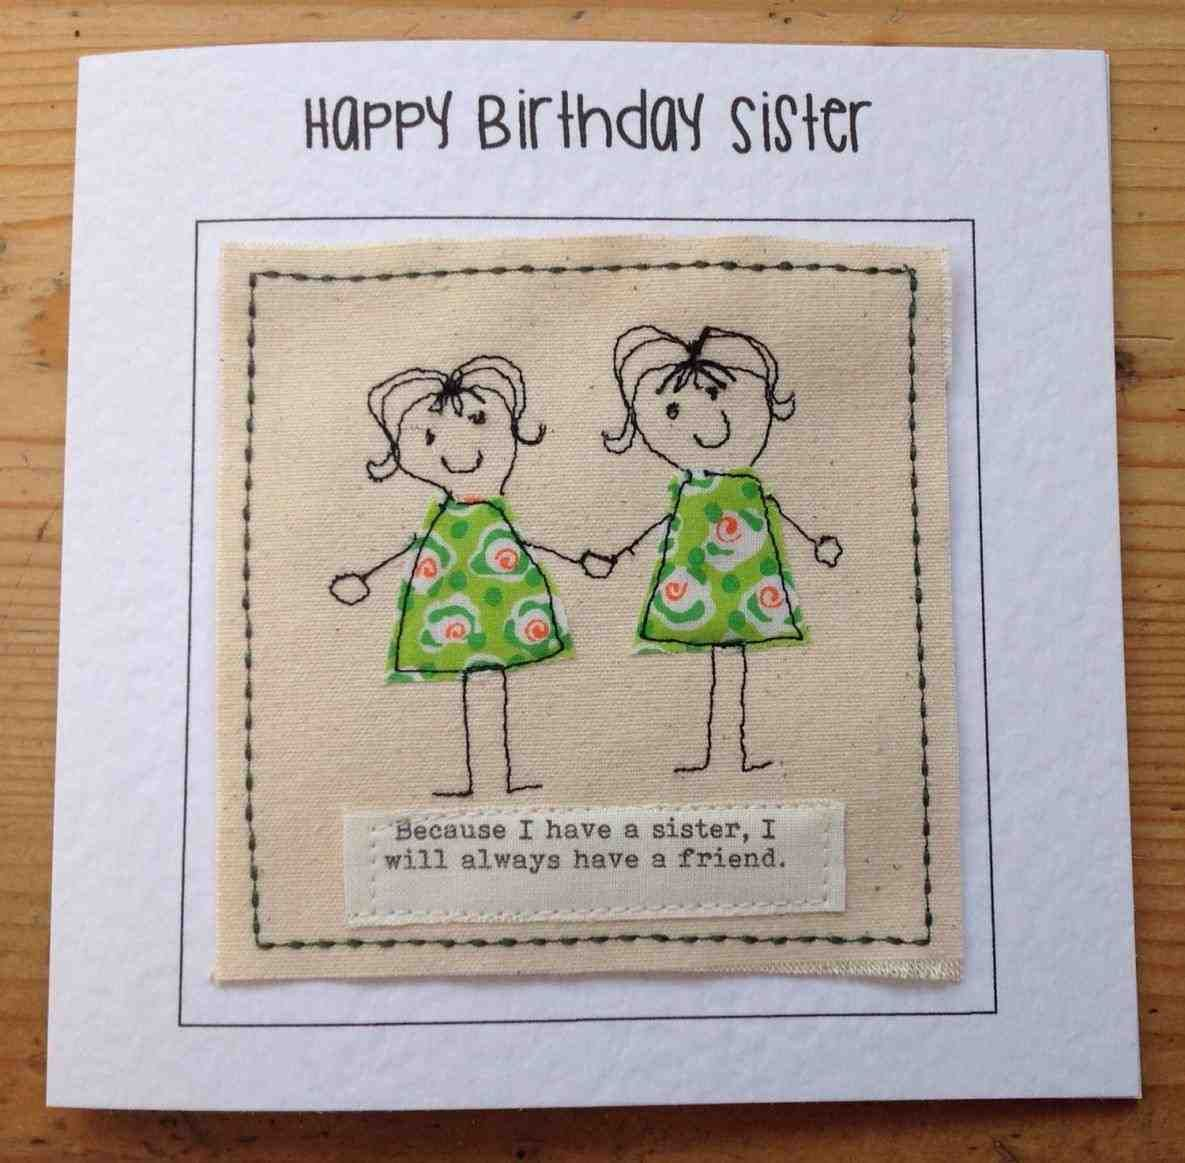 Designs Create Birthday Cards Card Inside Of Diy Projects Crafts Cute Cardsbday 2 Different Types Handmade Greeting